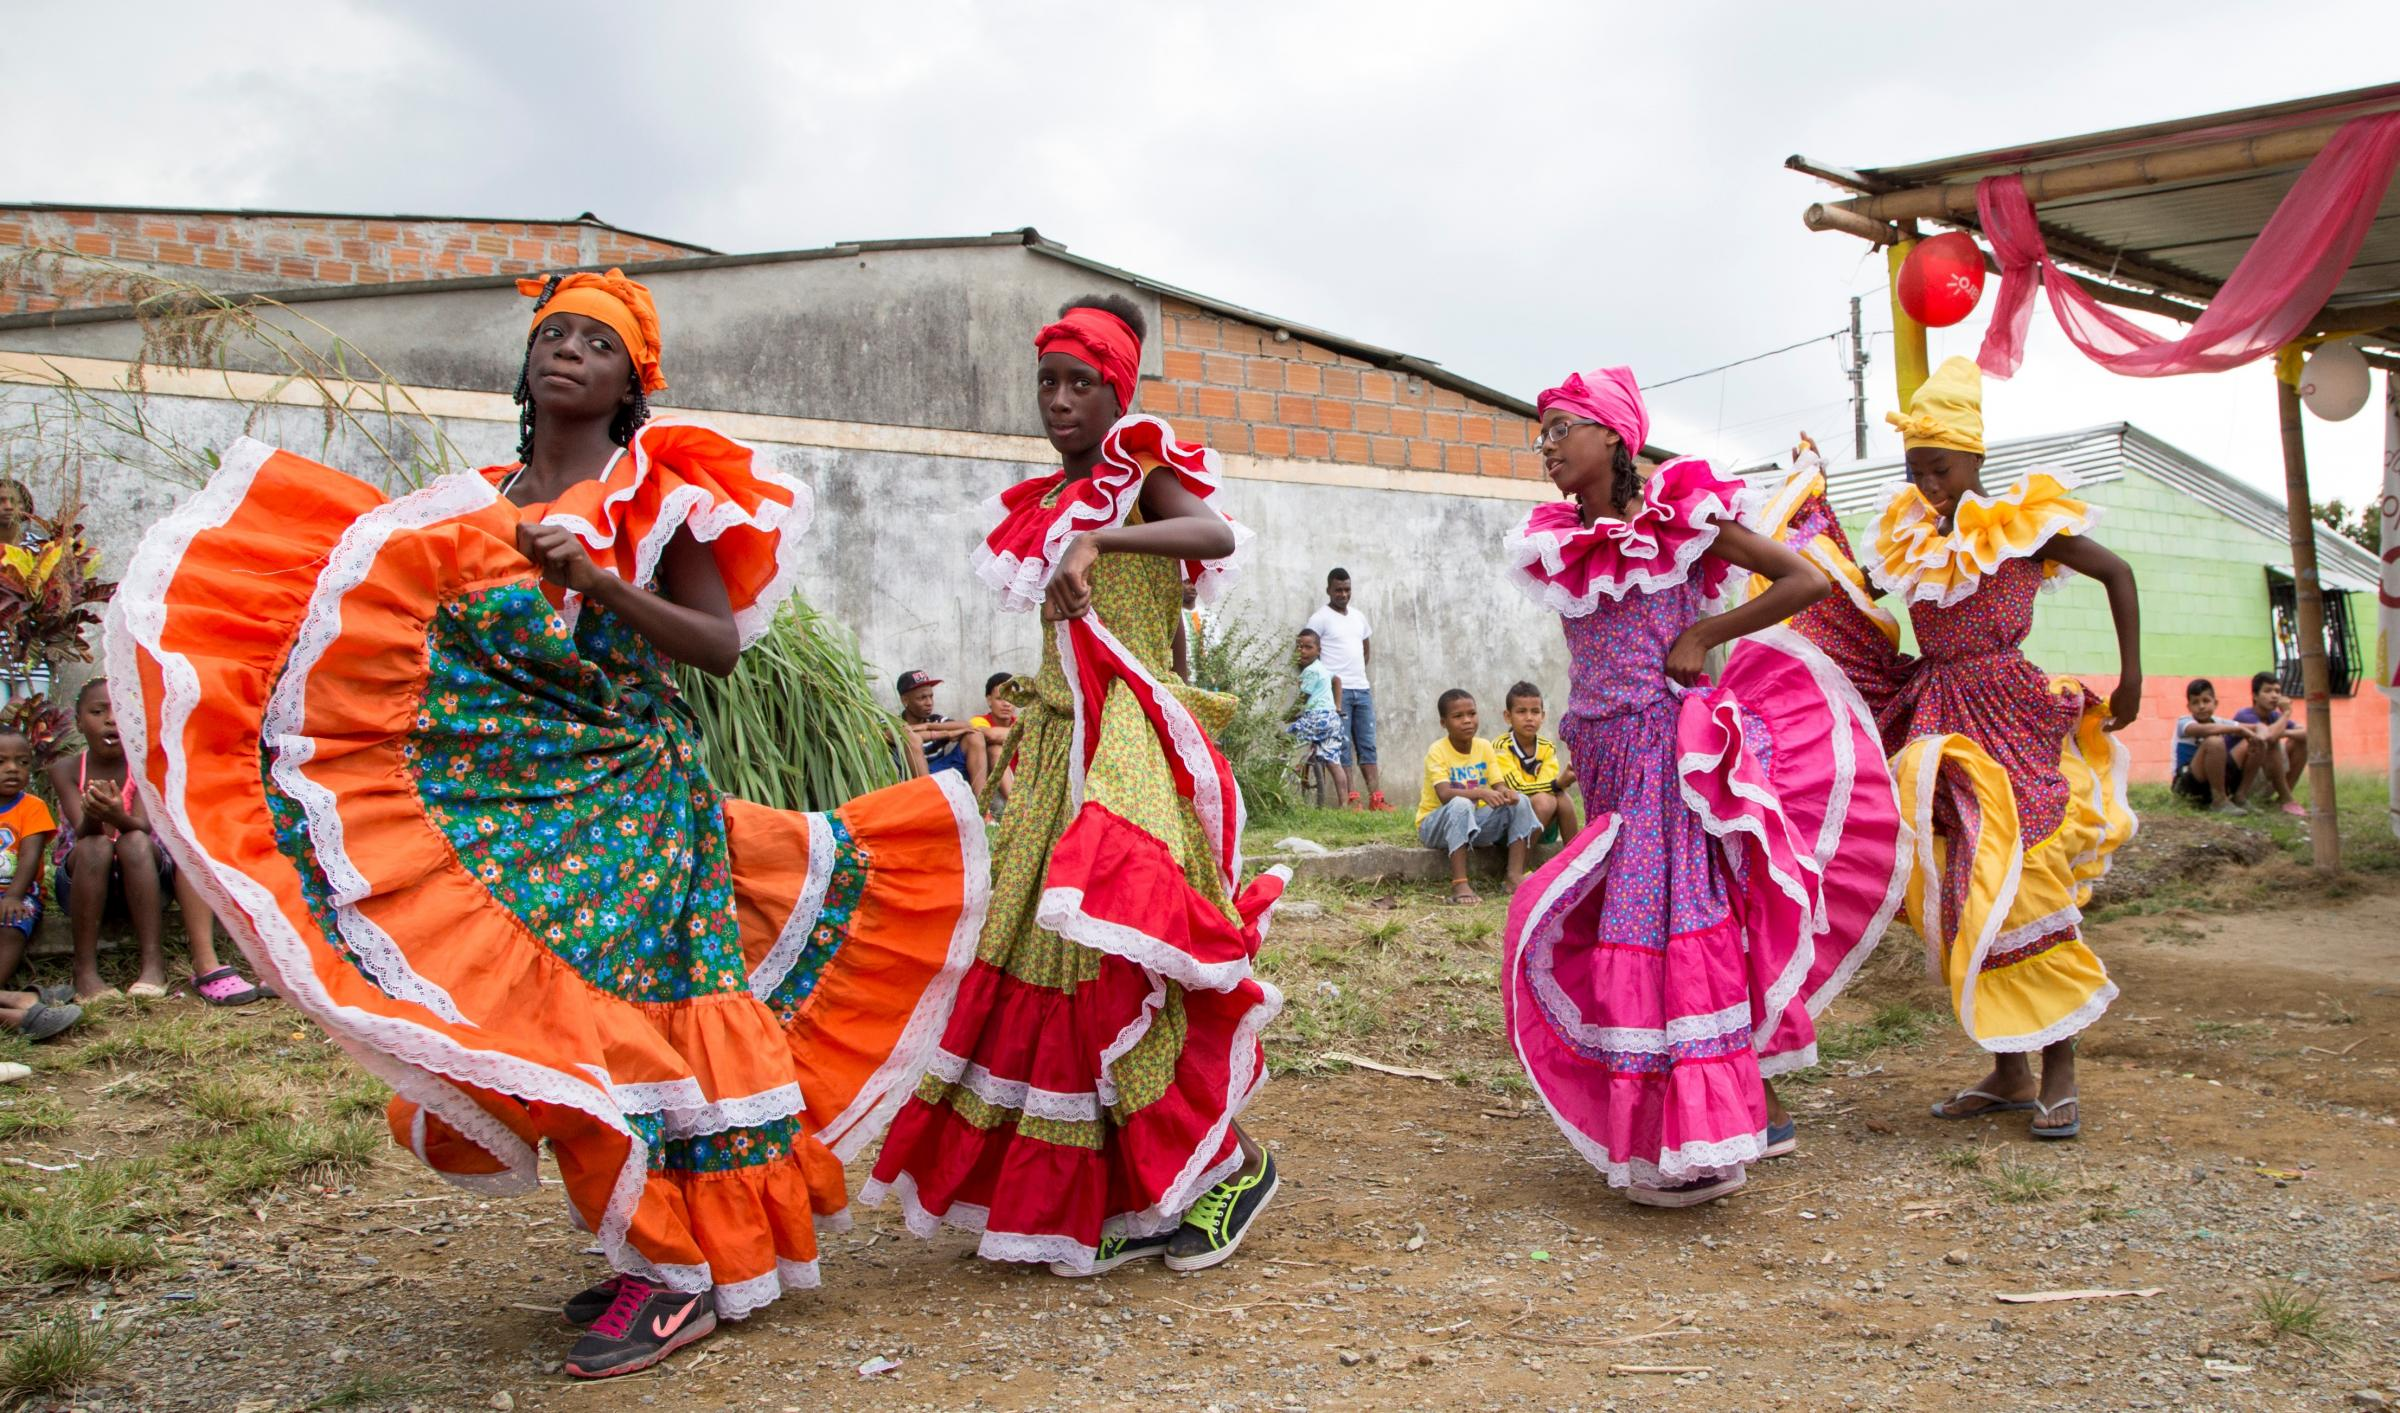 A group of young girls with colorful dresses dancing in a single file line.